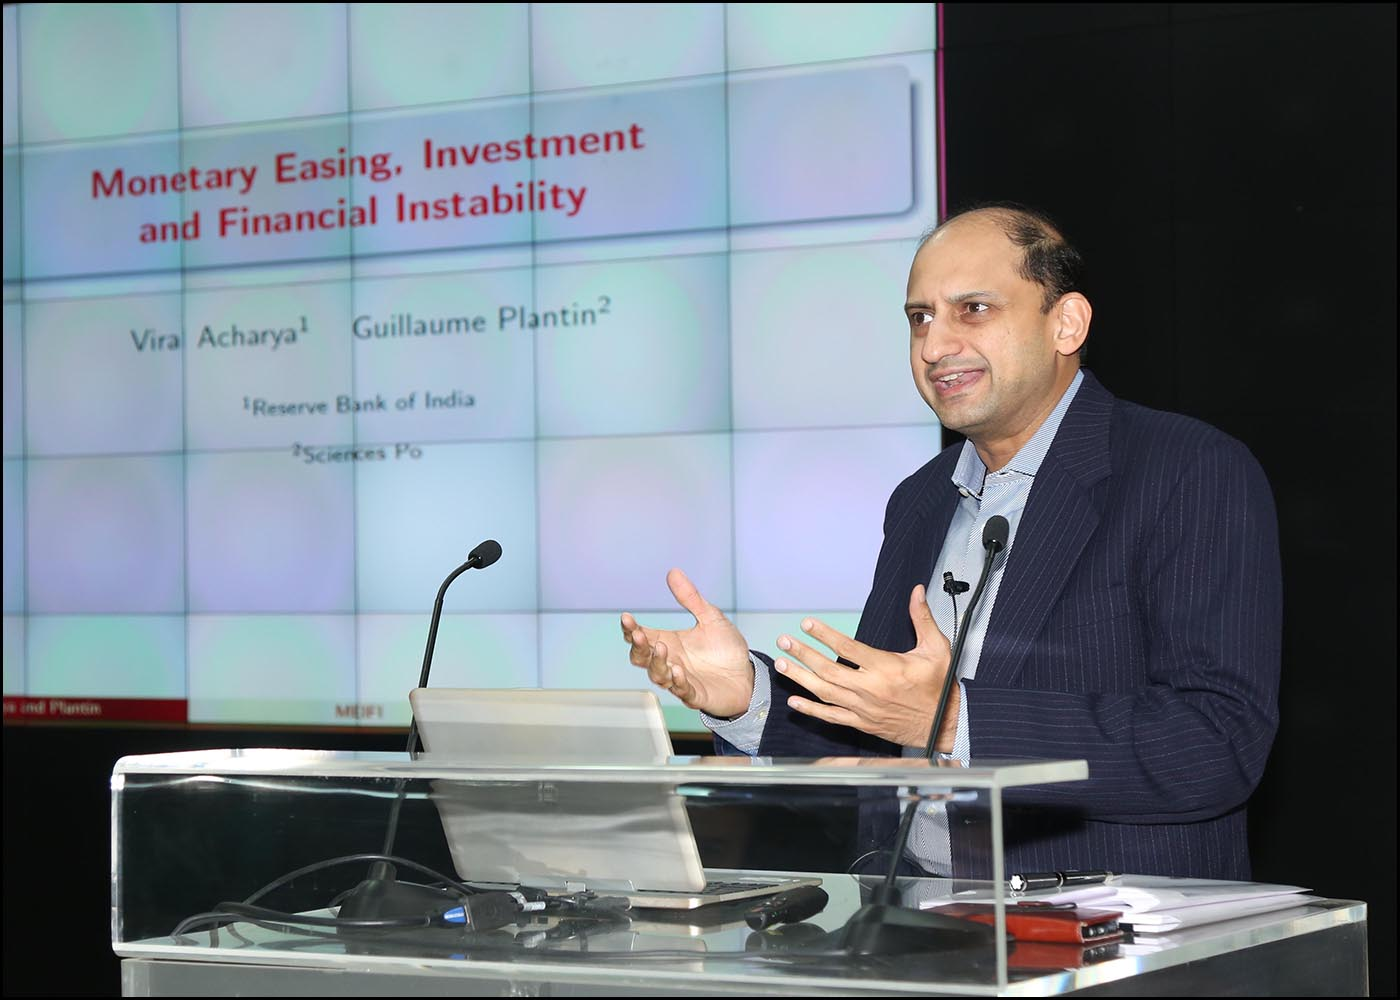 Dr. Viral V. Acharya, Deputy Governor, Reserve Bank of India